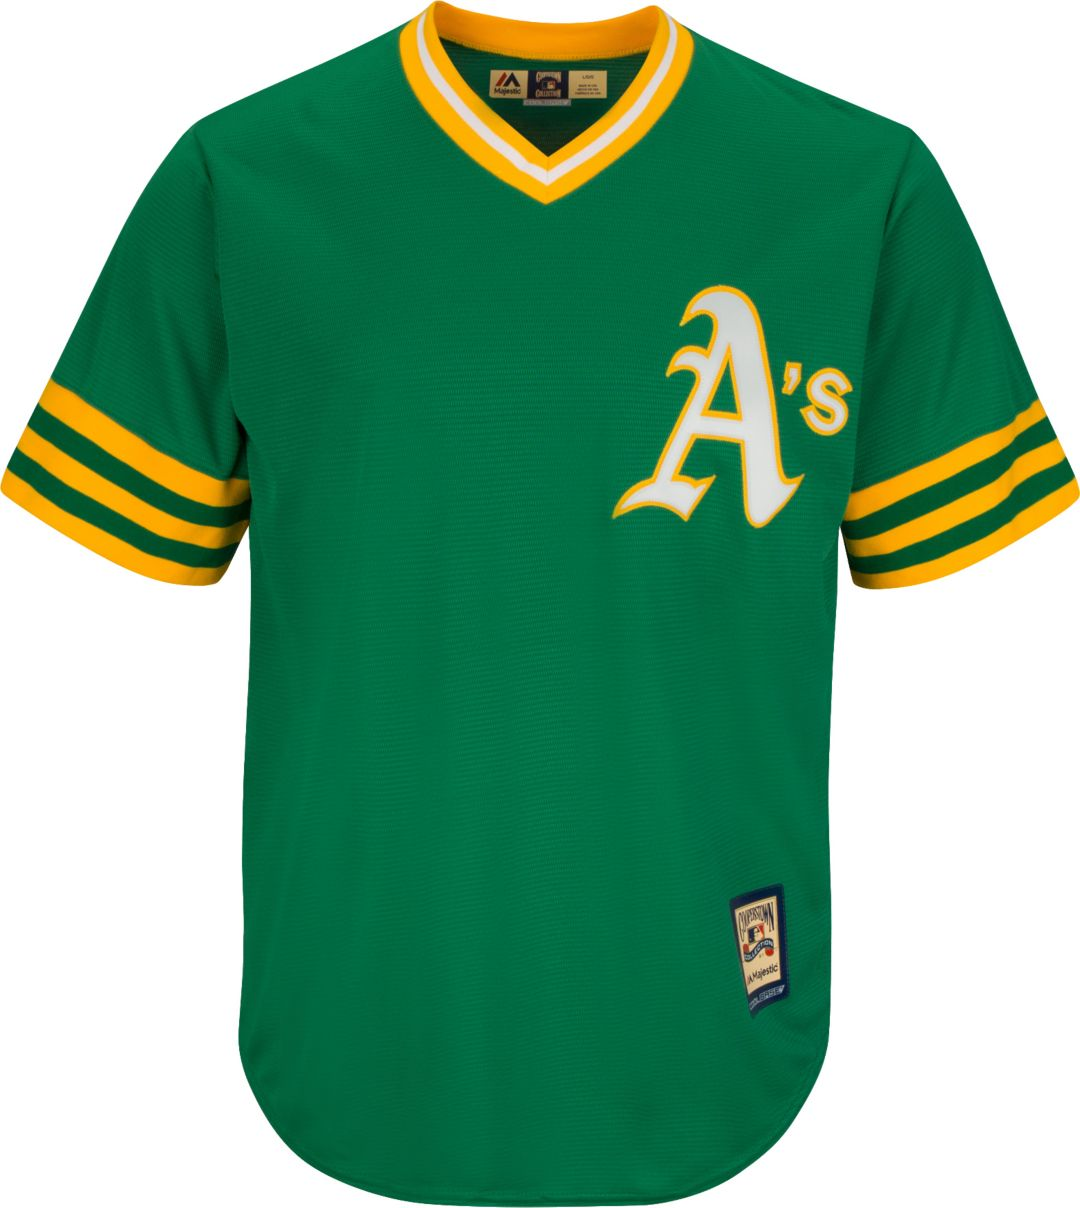 meet 8d29b 6e268 Majestic Men's Replica Oakland Athletics Reggie Jackson Cool Base Green  Cooperstown Jersey